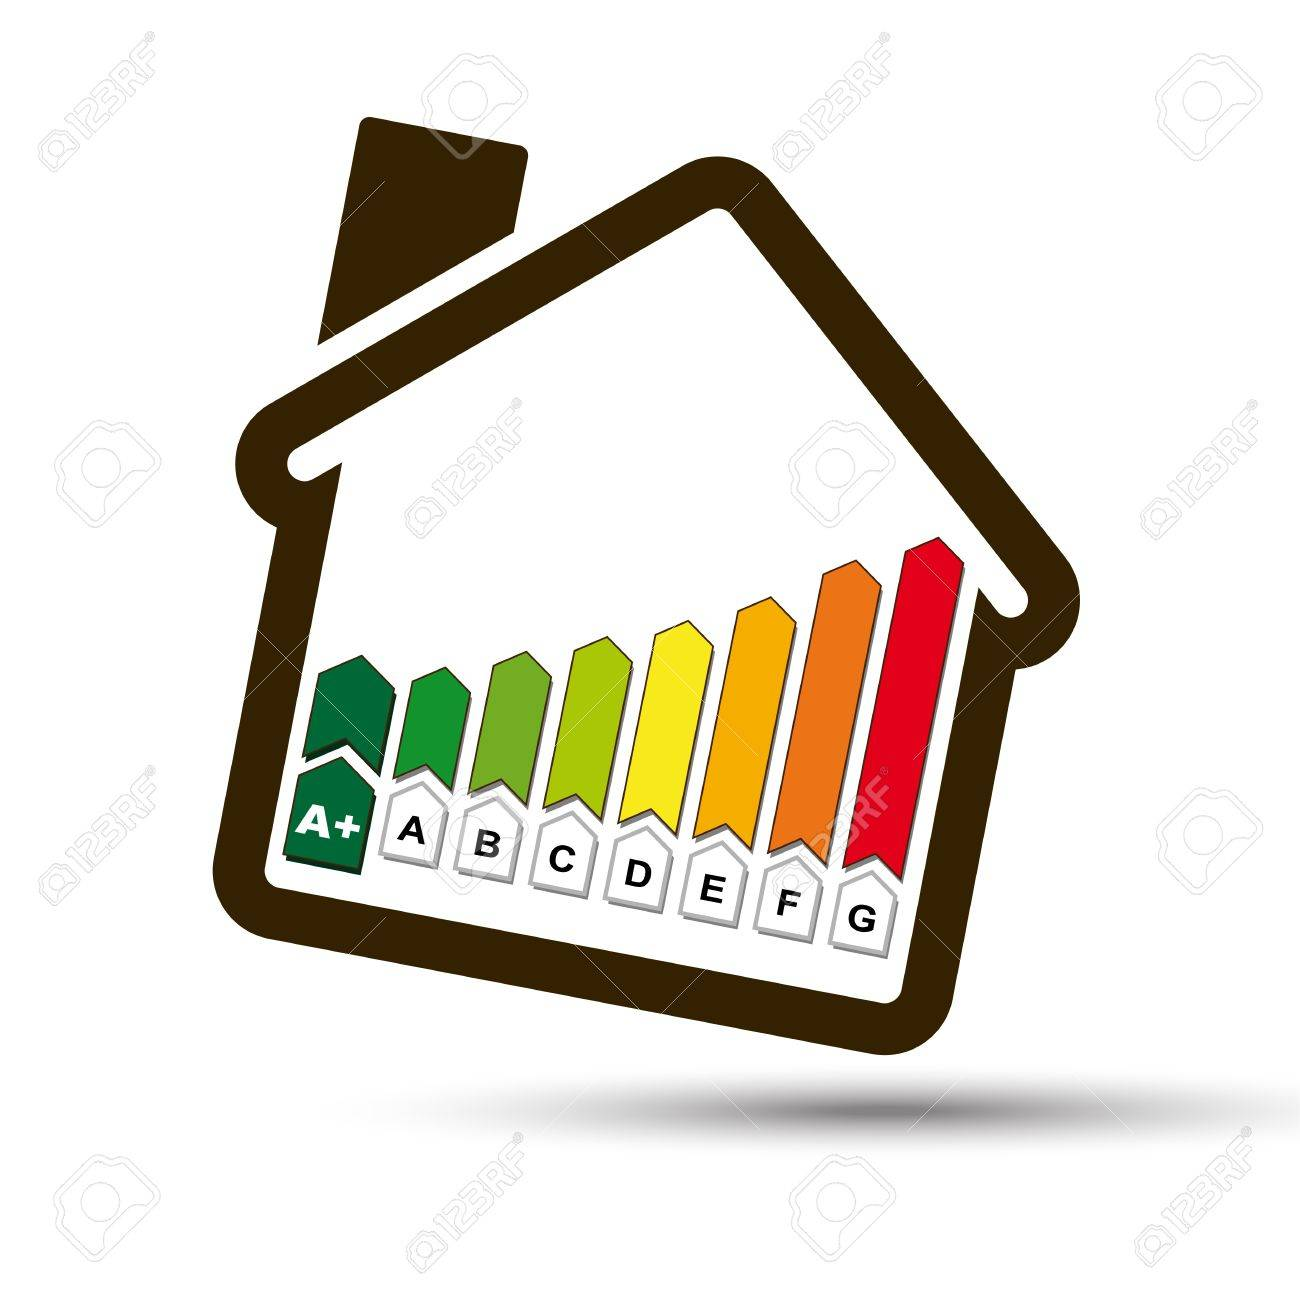 Eco House With Energetic Classes Histogram Symbol Ecological Home, With Energy  Class Icon For Sustainable